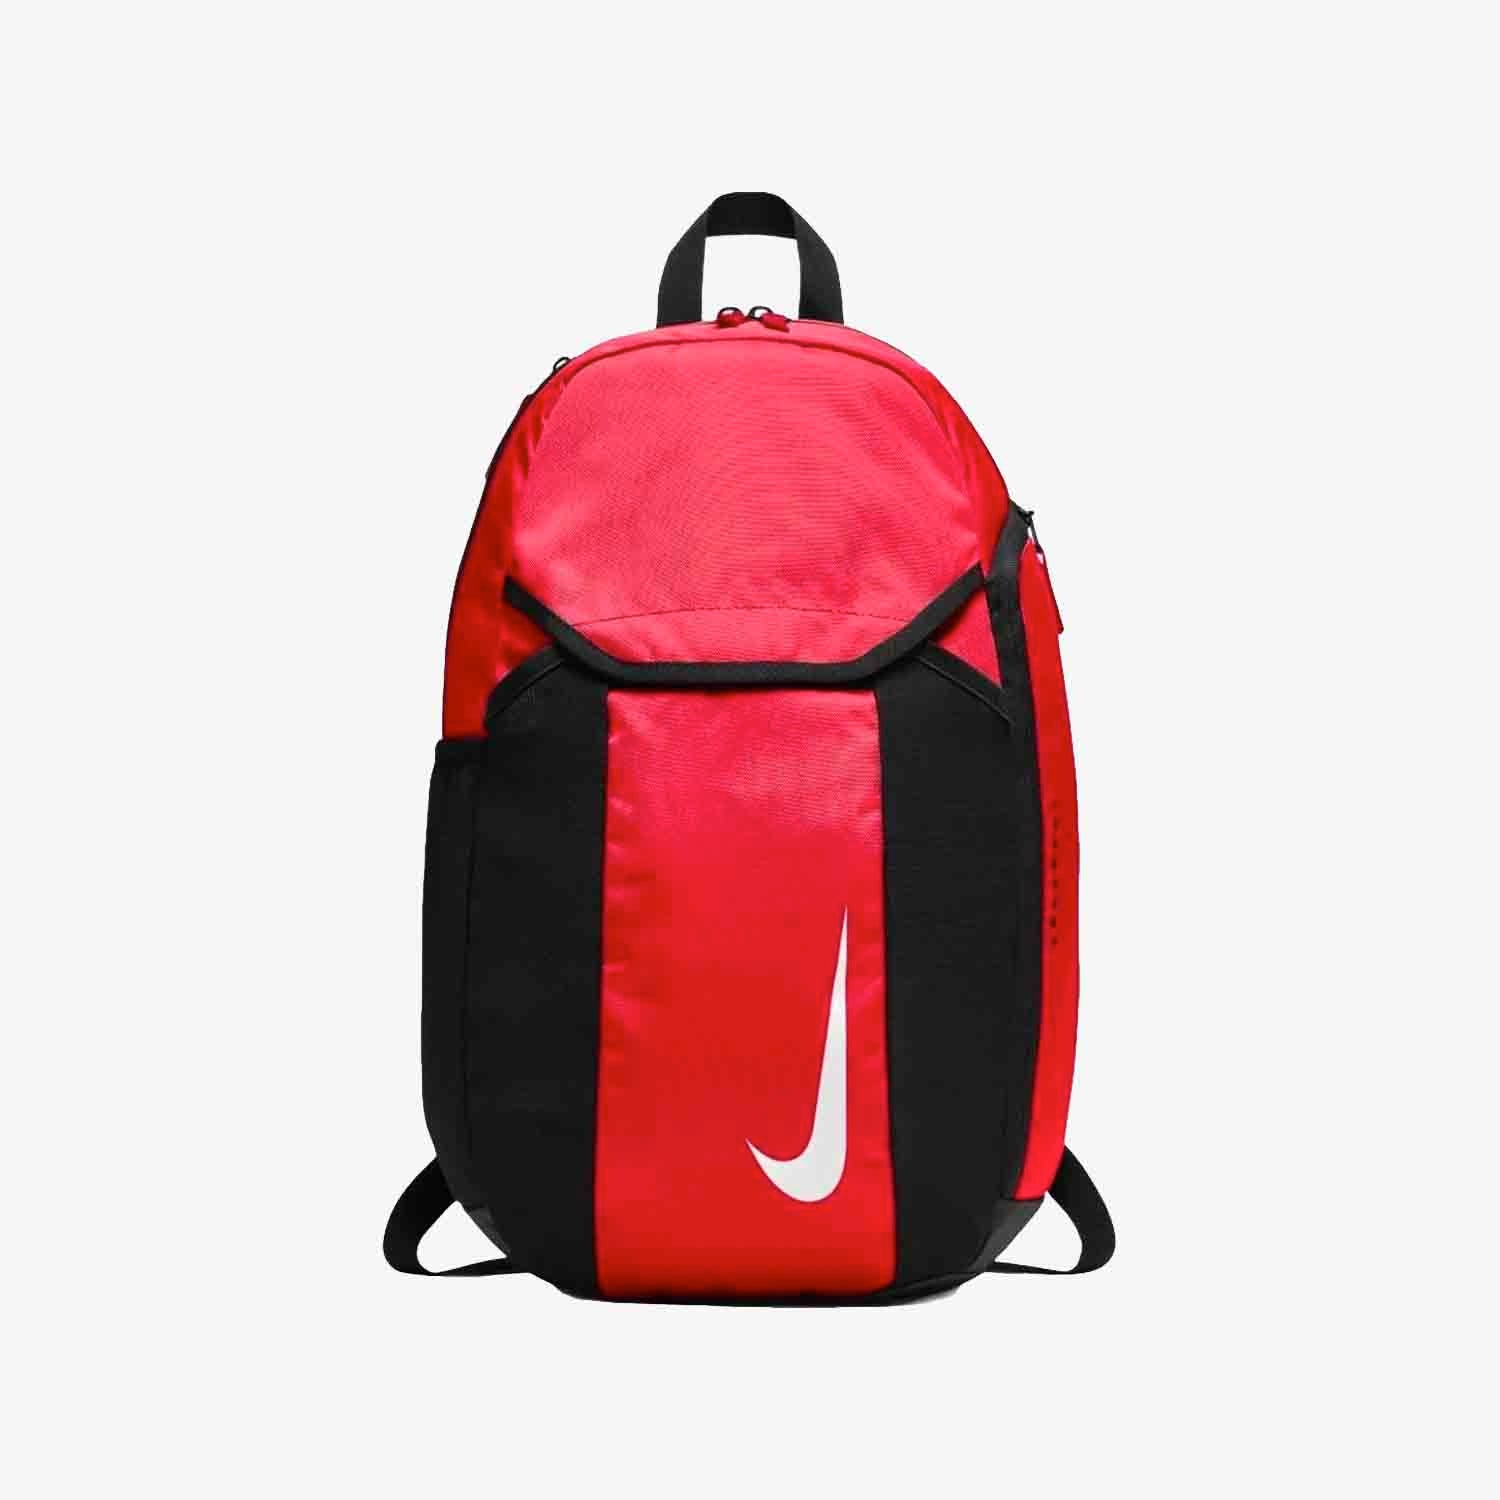 Academy Team Backpack - Red/Black